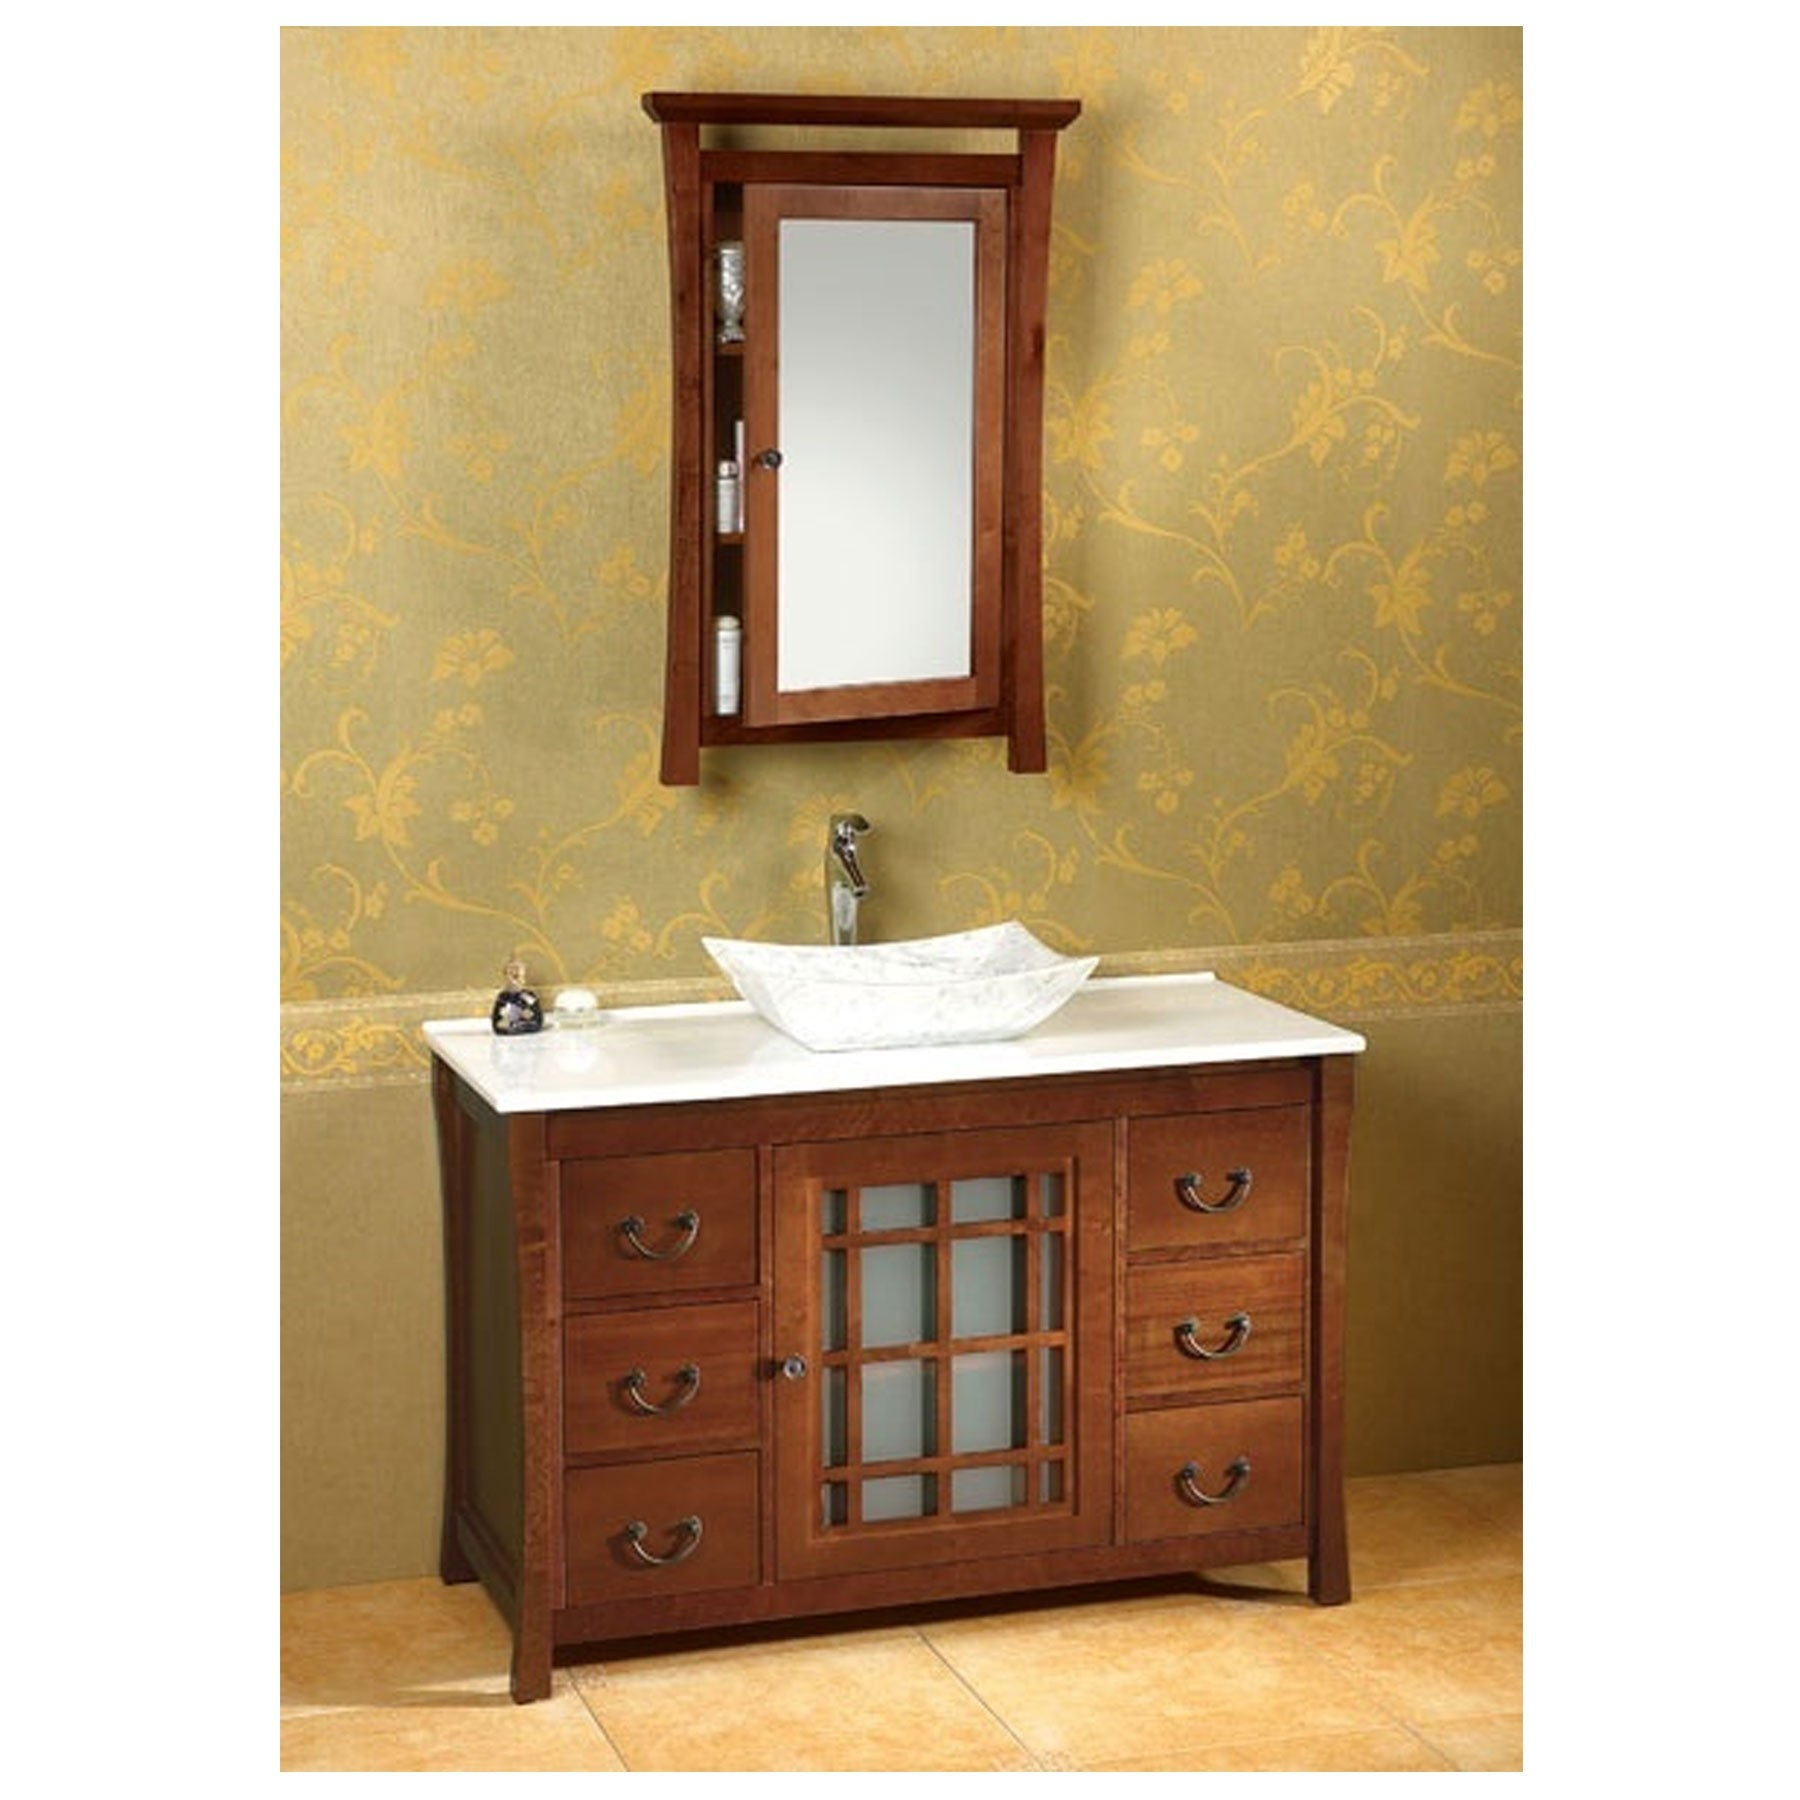 Sachi 25 W X 39 H Wood Framed Medicine Cabinet With Mirror And Shelf Natural Cherry